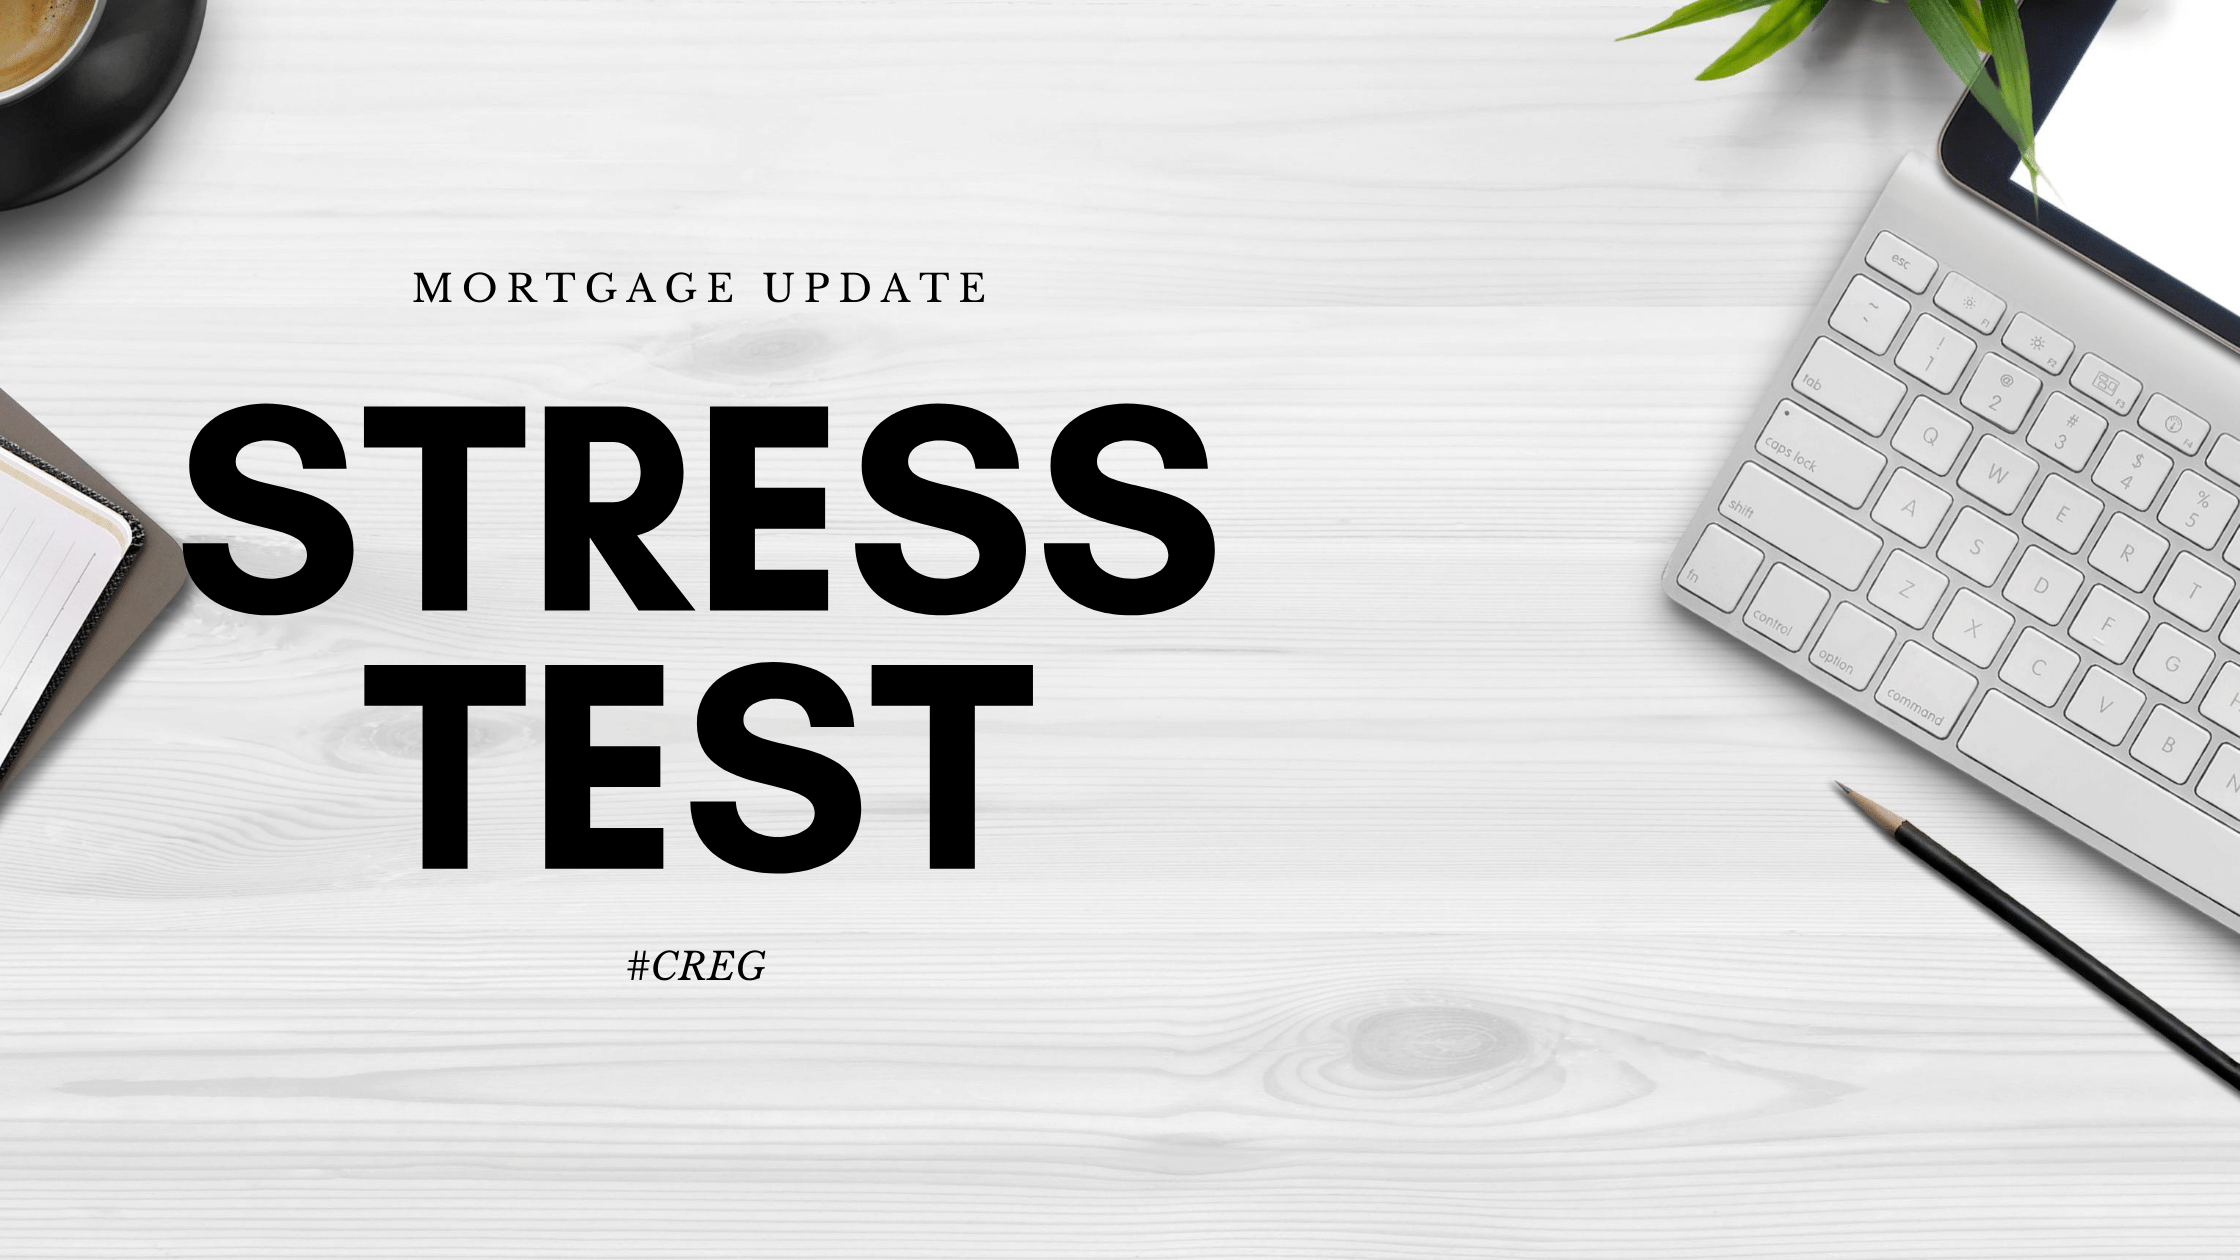 What does the Stress Test Change Mean for Me?